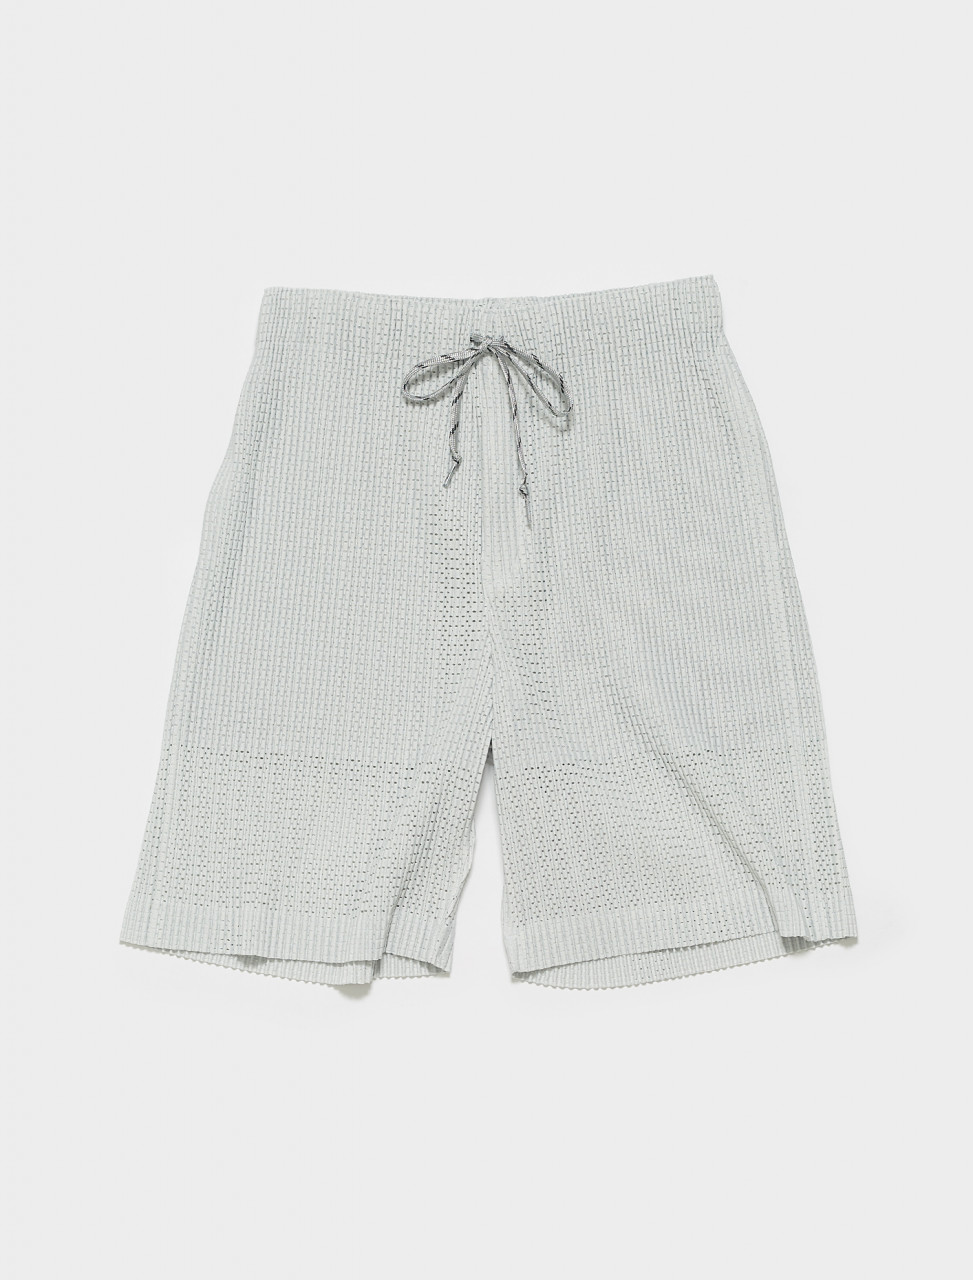 HP16JF142-90 HOMME PLISSE ISSEY MIYAKE PLEATED SHORTS SILVER GREEN